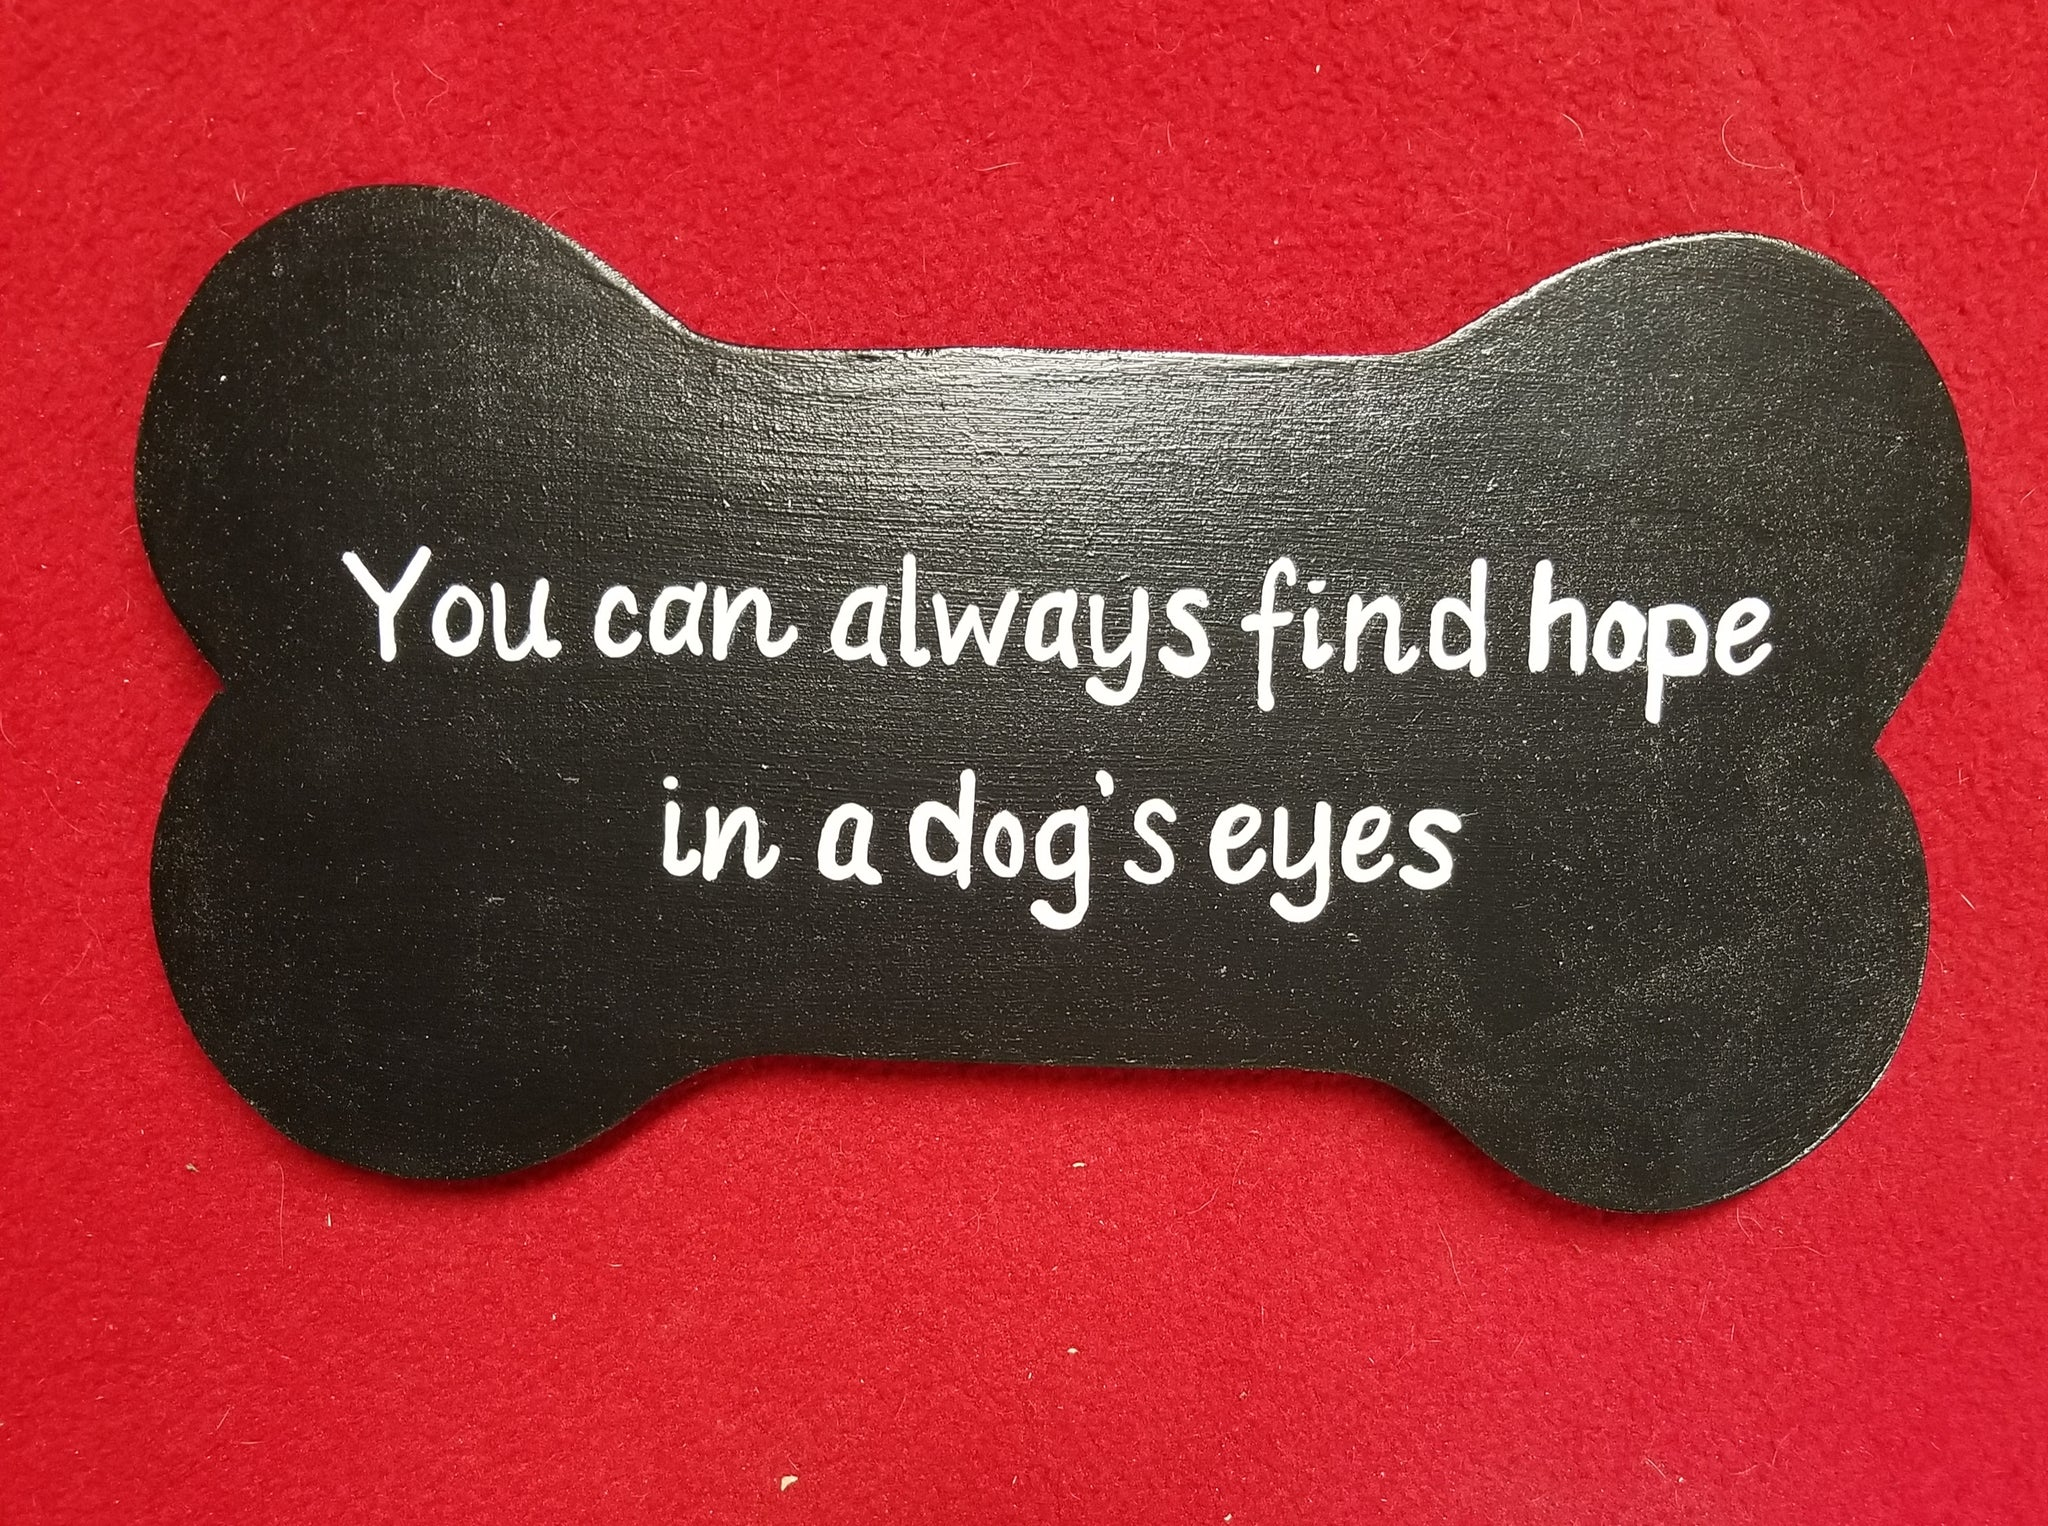 You can always find hope in a dog's eyes